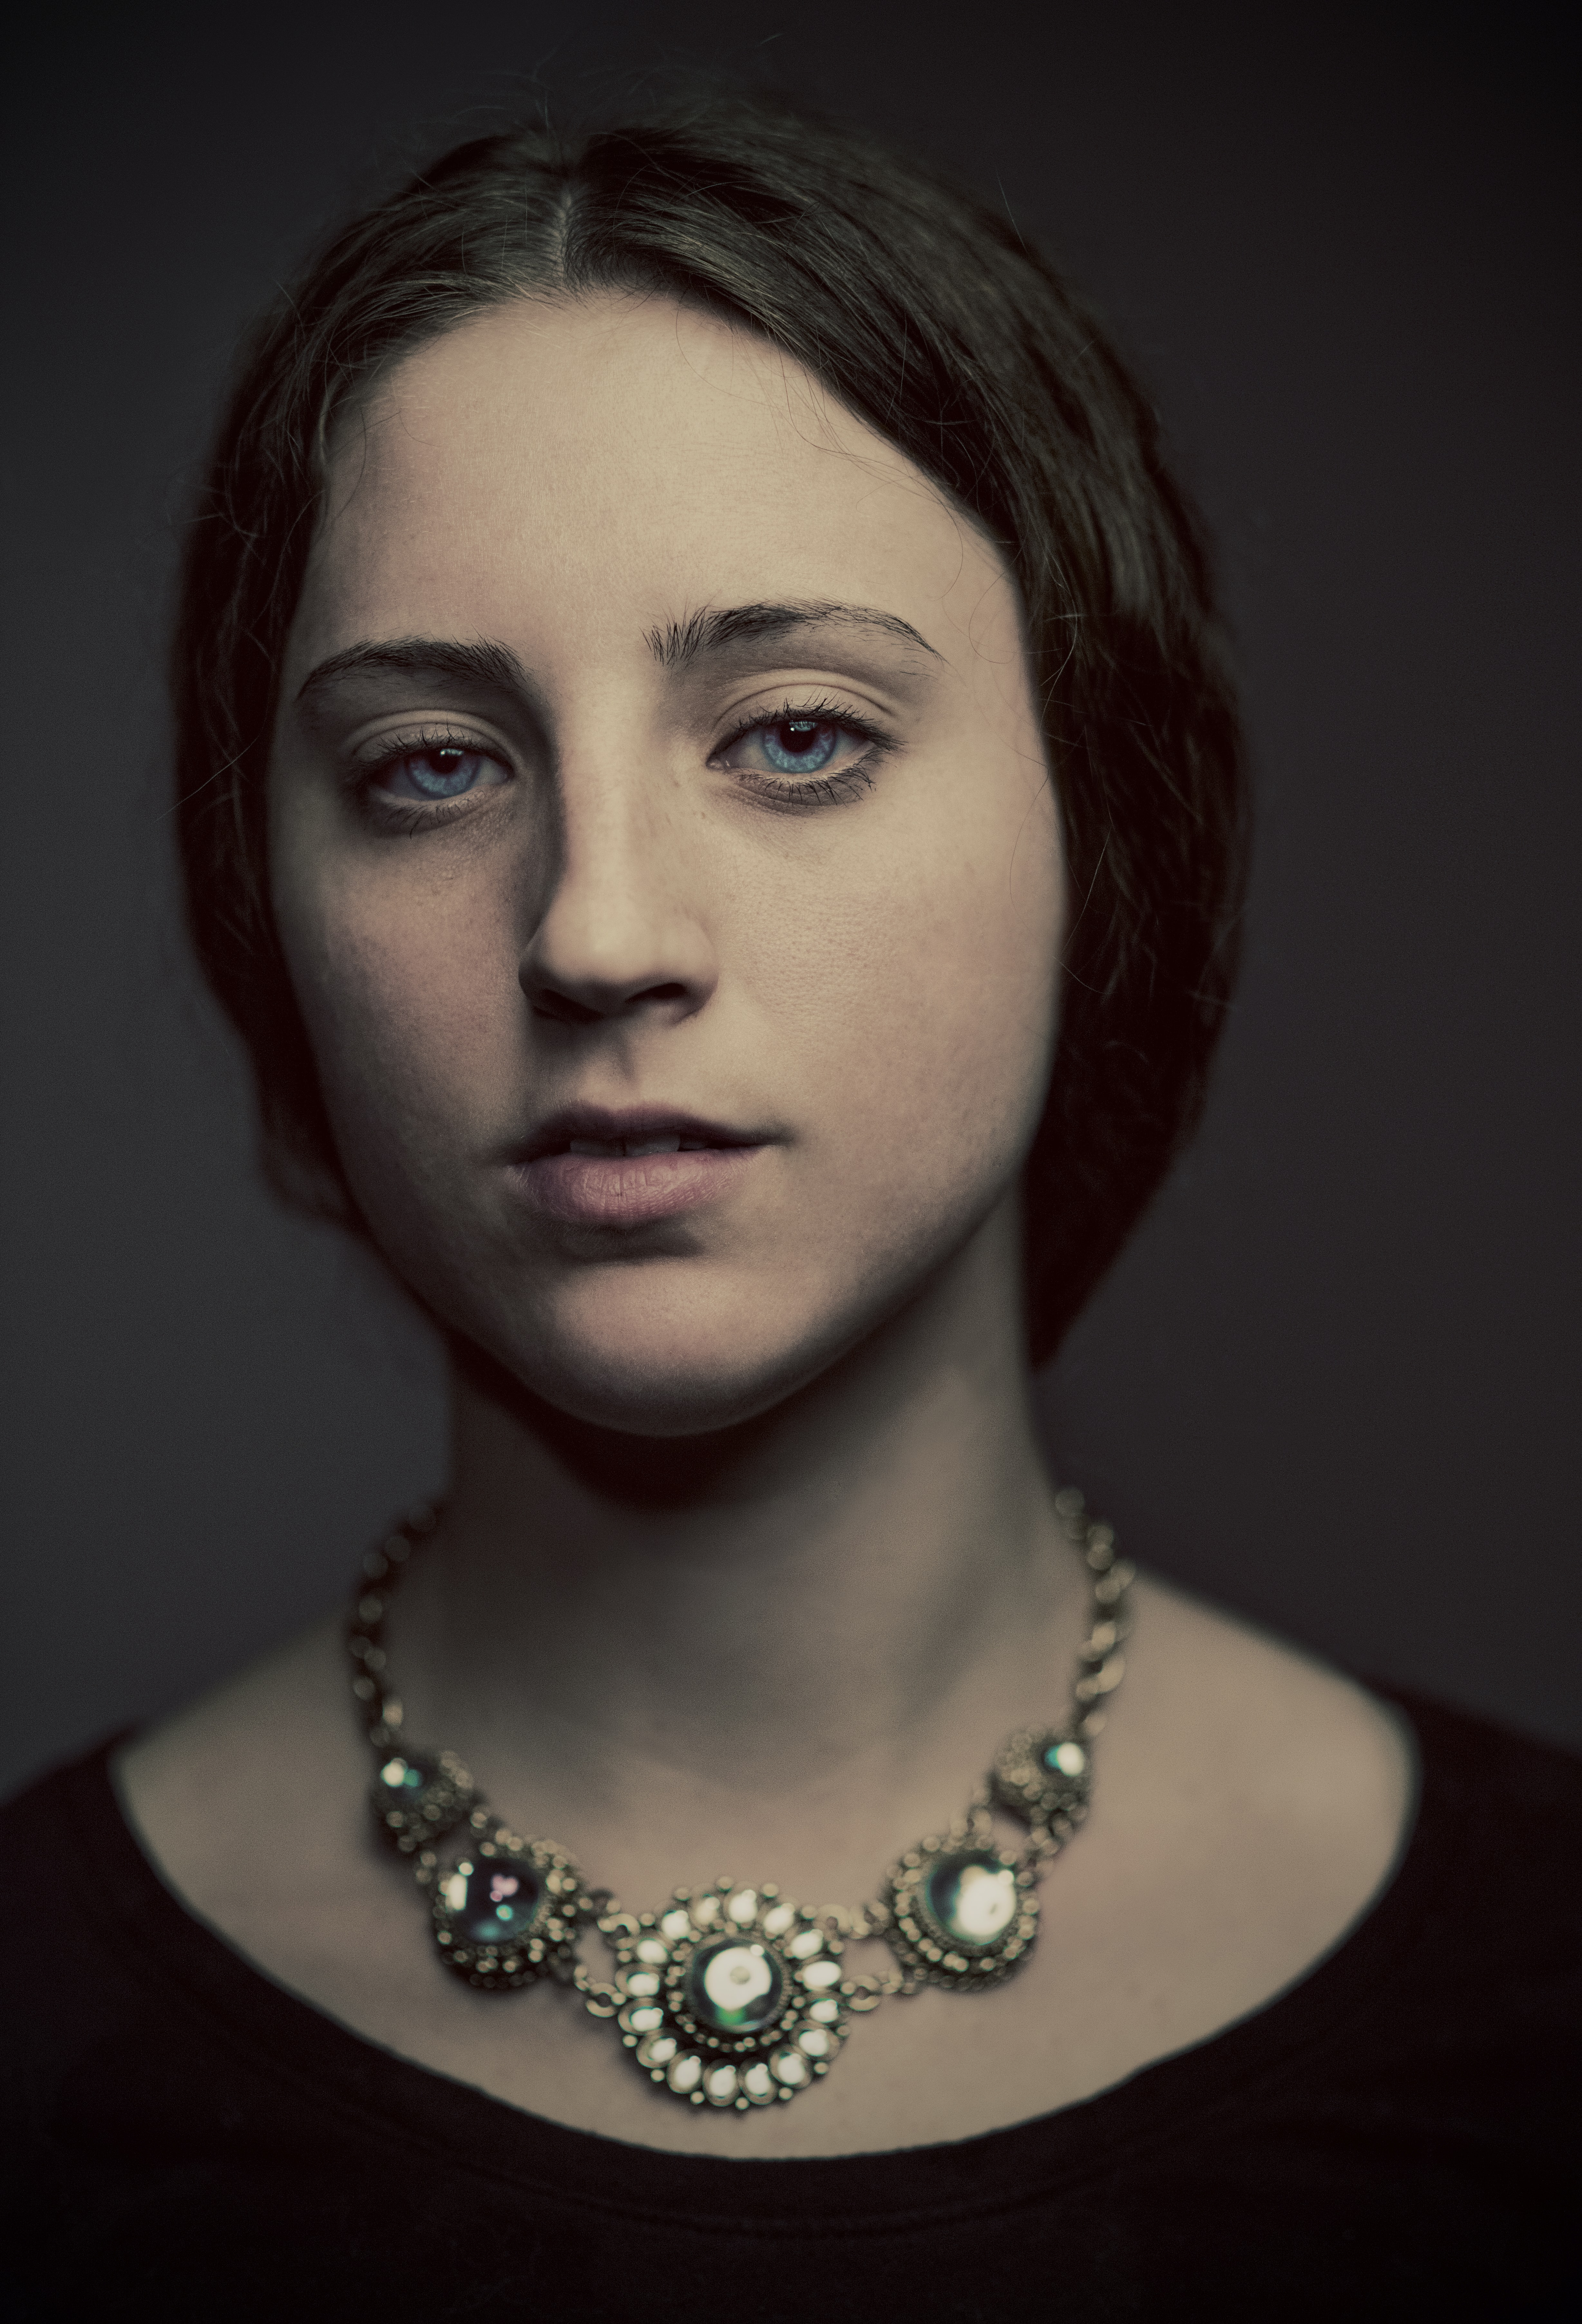 Portrait of a woman in a vintage jeweled necklace